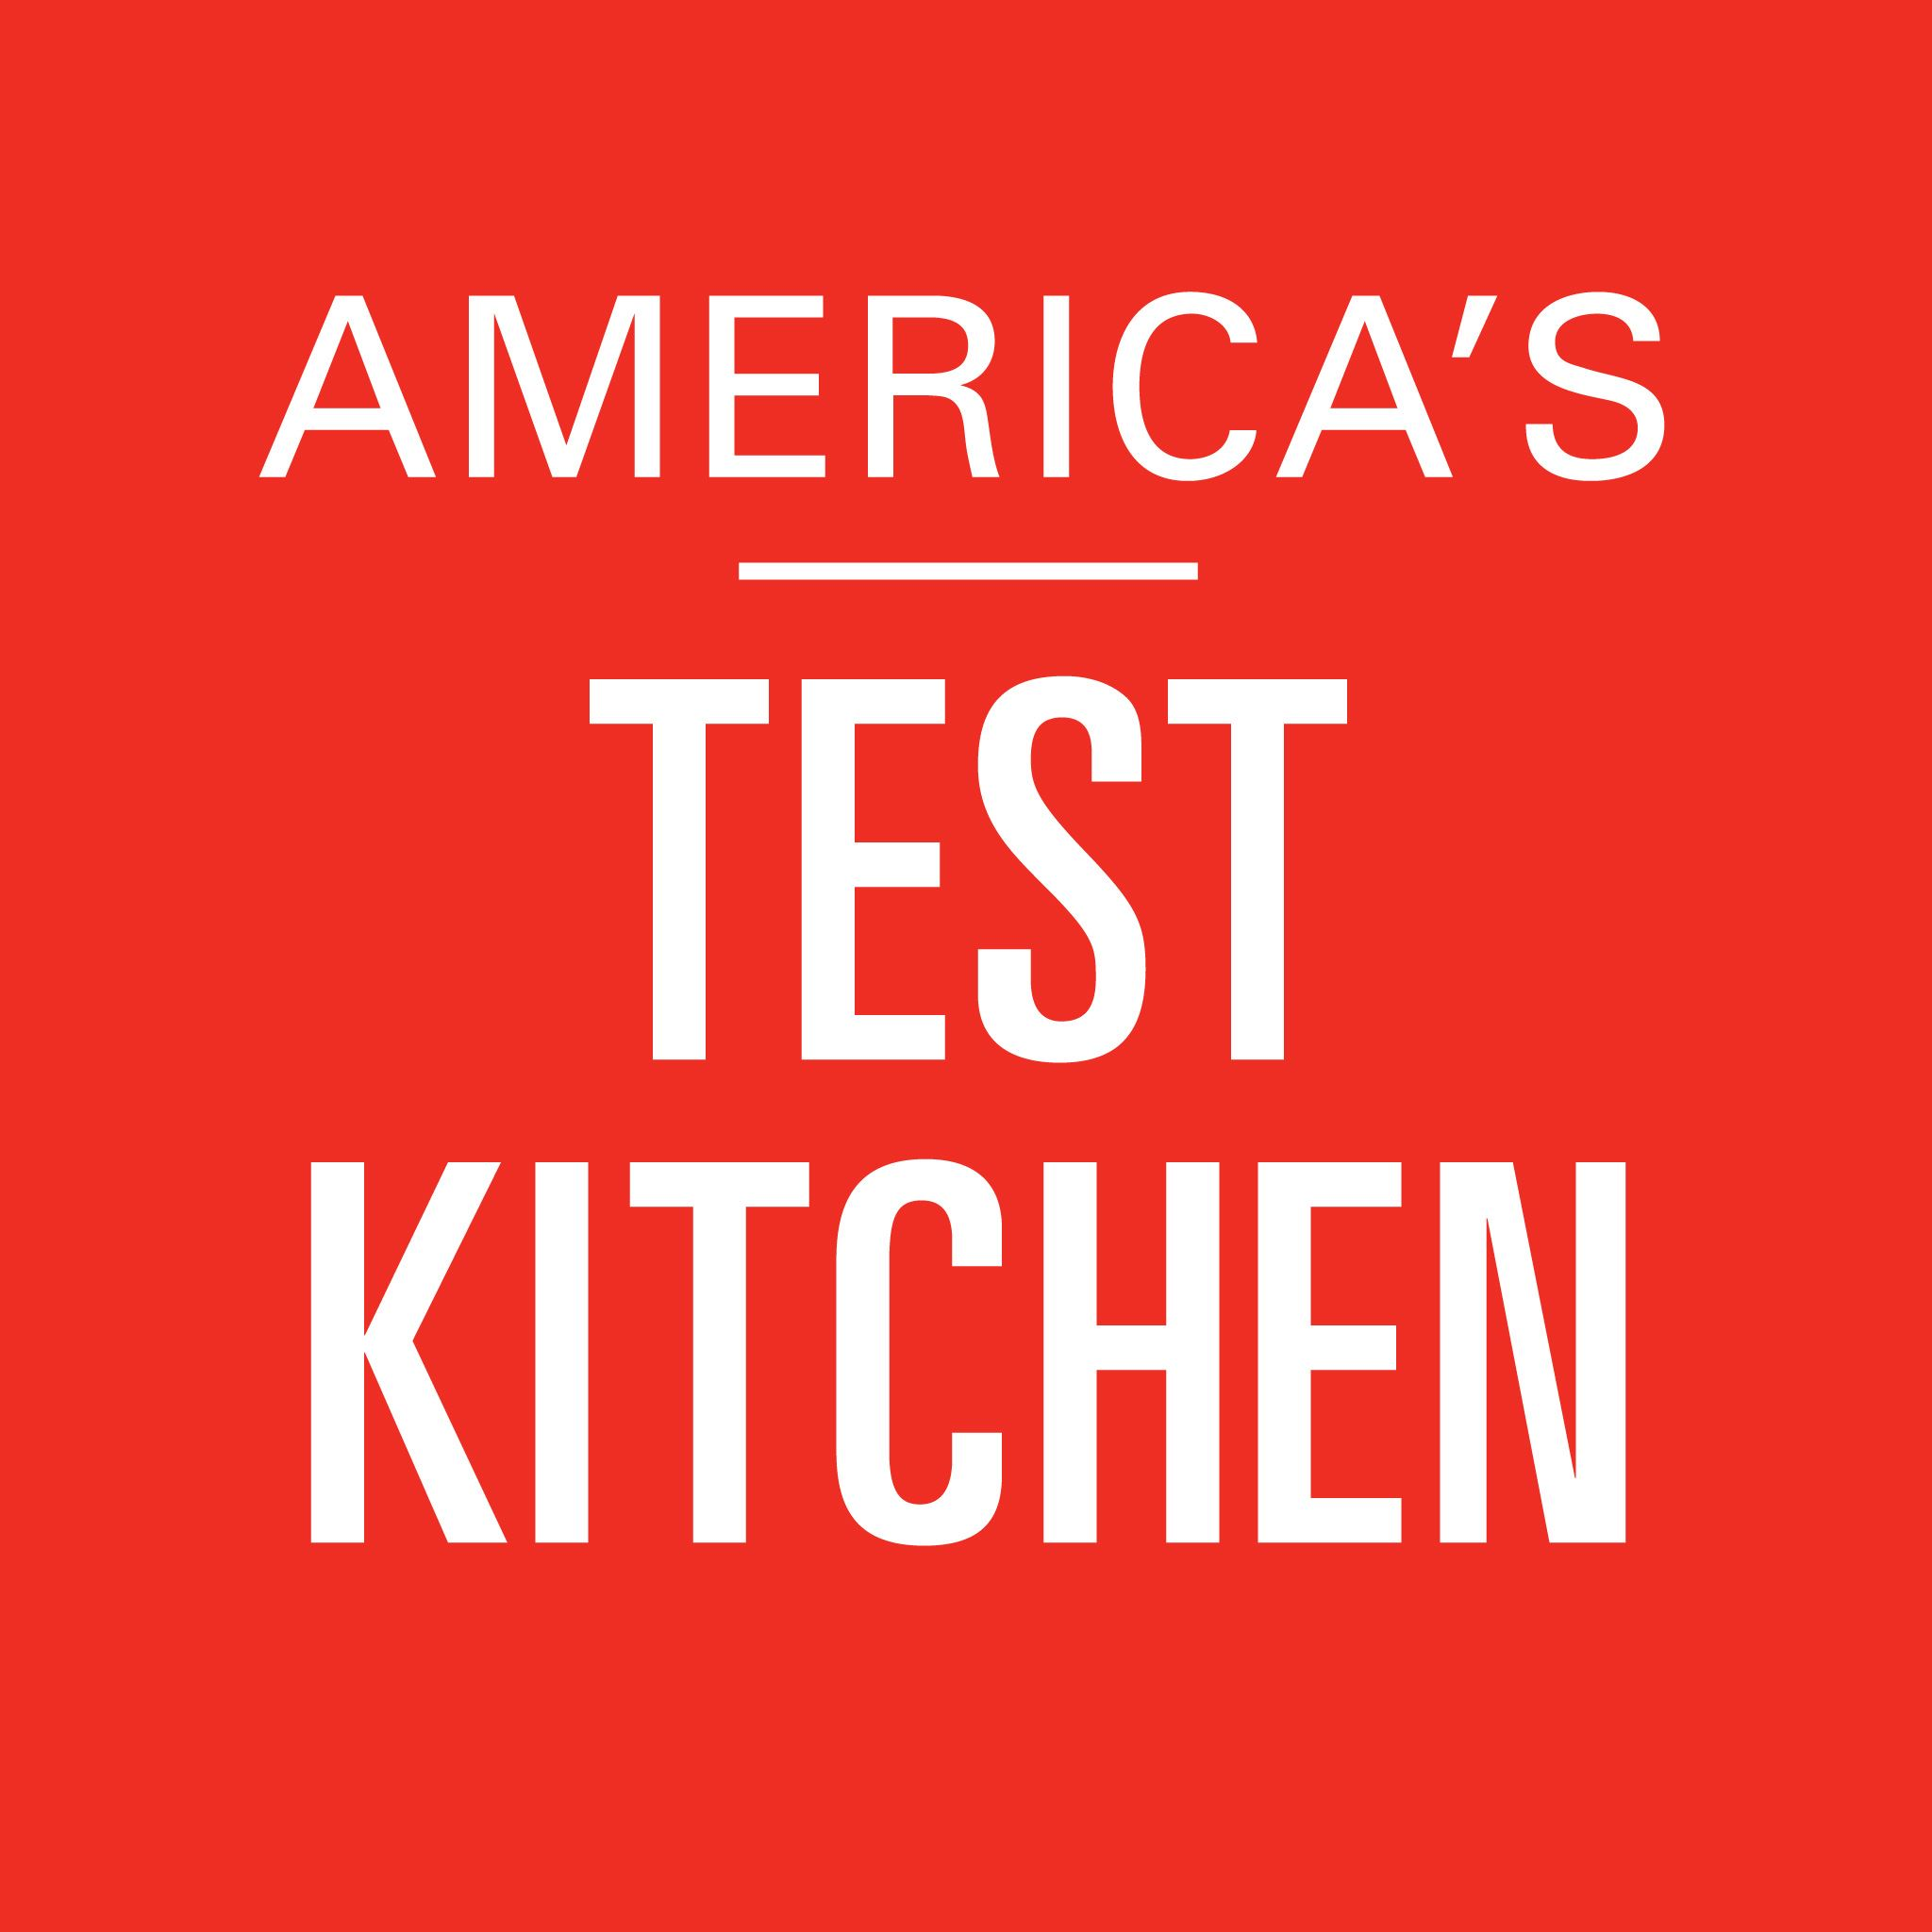 Americas Test Kitchen Opens in new window